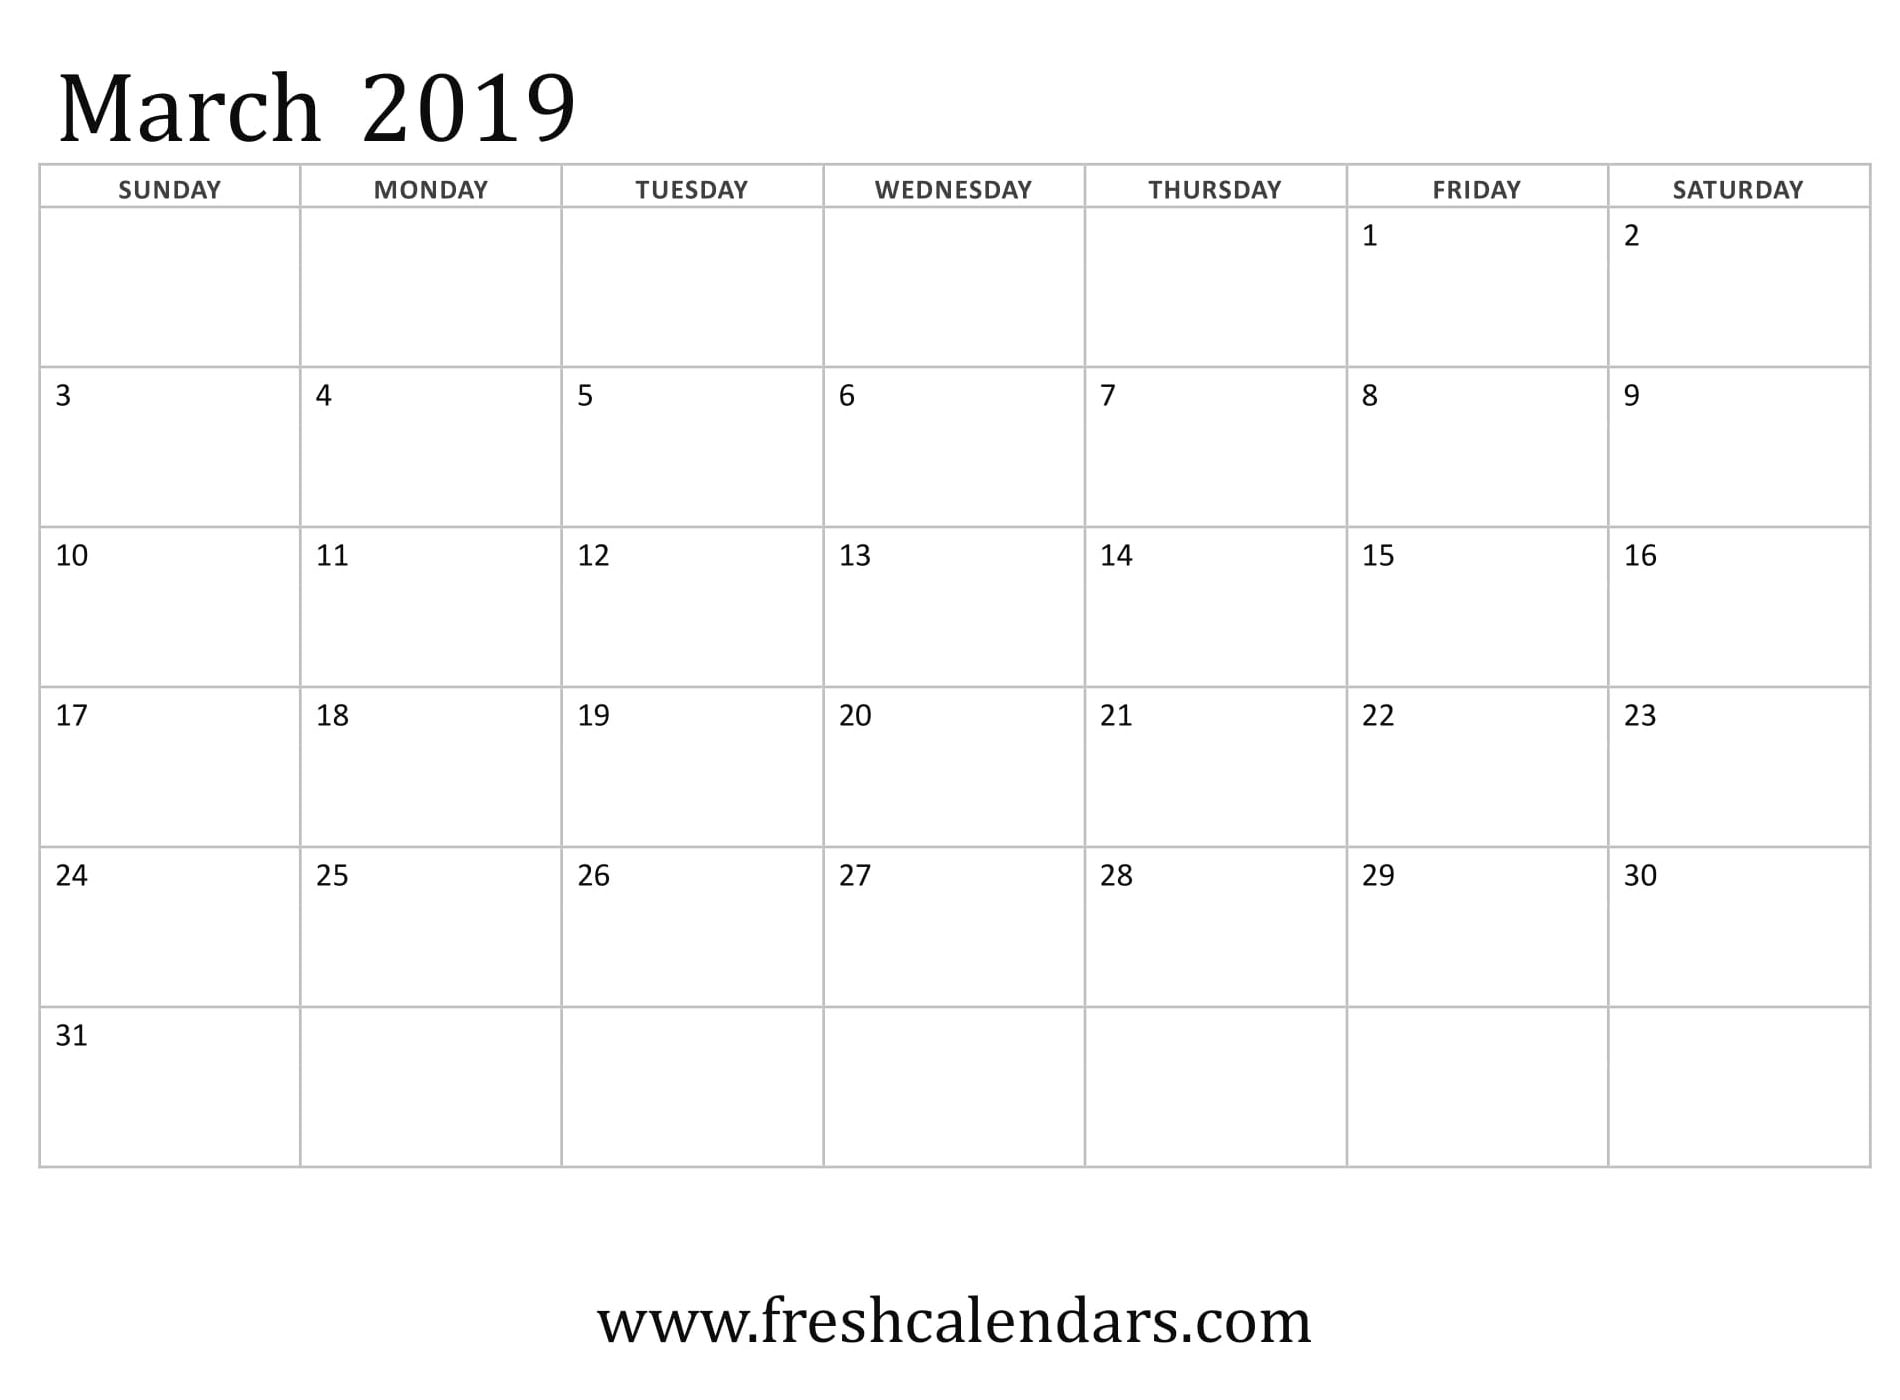 March 2019 Calendar Printable Fresh Calendars